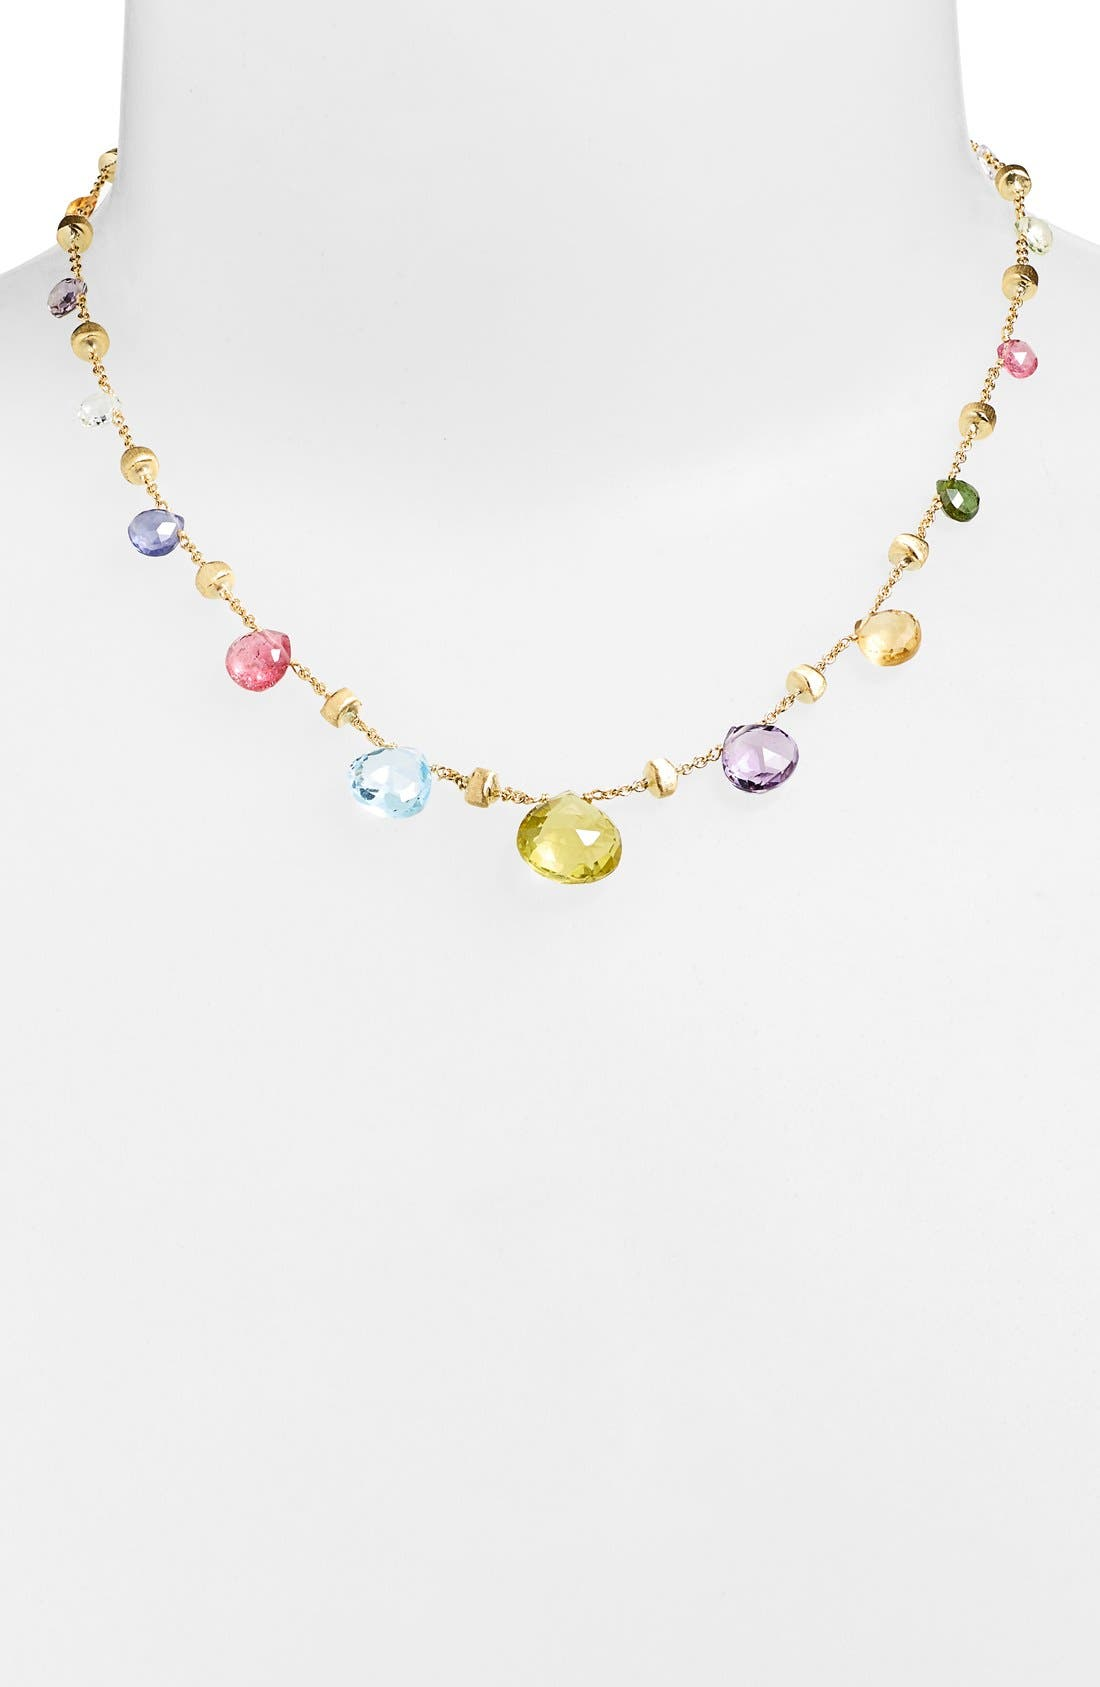 MARCO BICEGO Paradise Collar Necklace